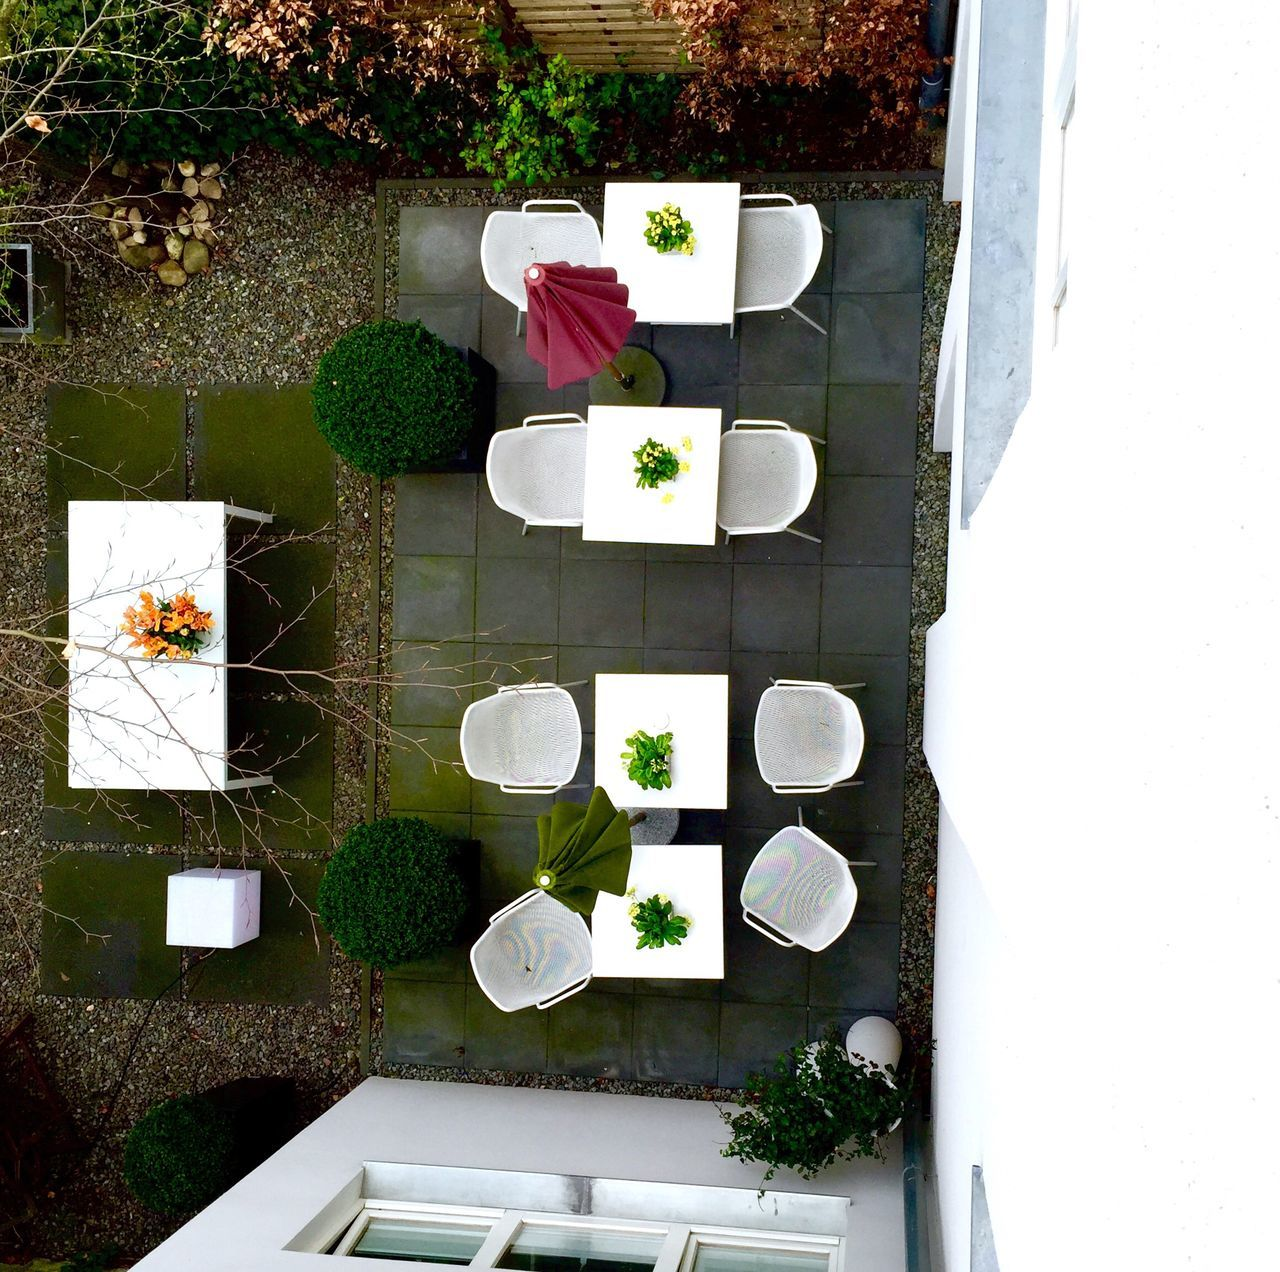 plant, nature, high angle view, flower, no people, day, flowering plant, table, chair, potted plant, seat, outdoors, freshness, arrangement, white color, beauty in nature, growth, green color, directly above, still life, flower pot